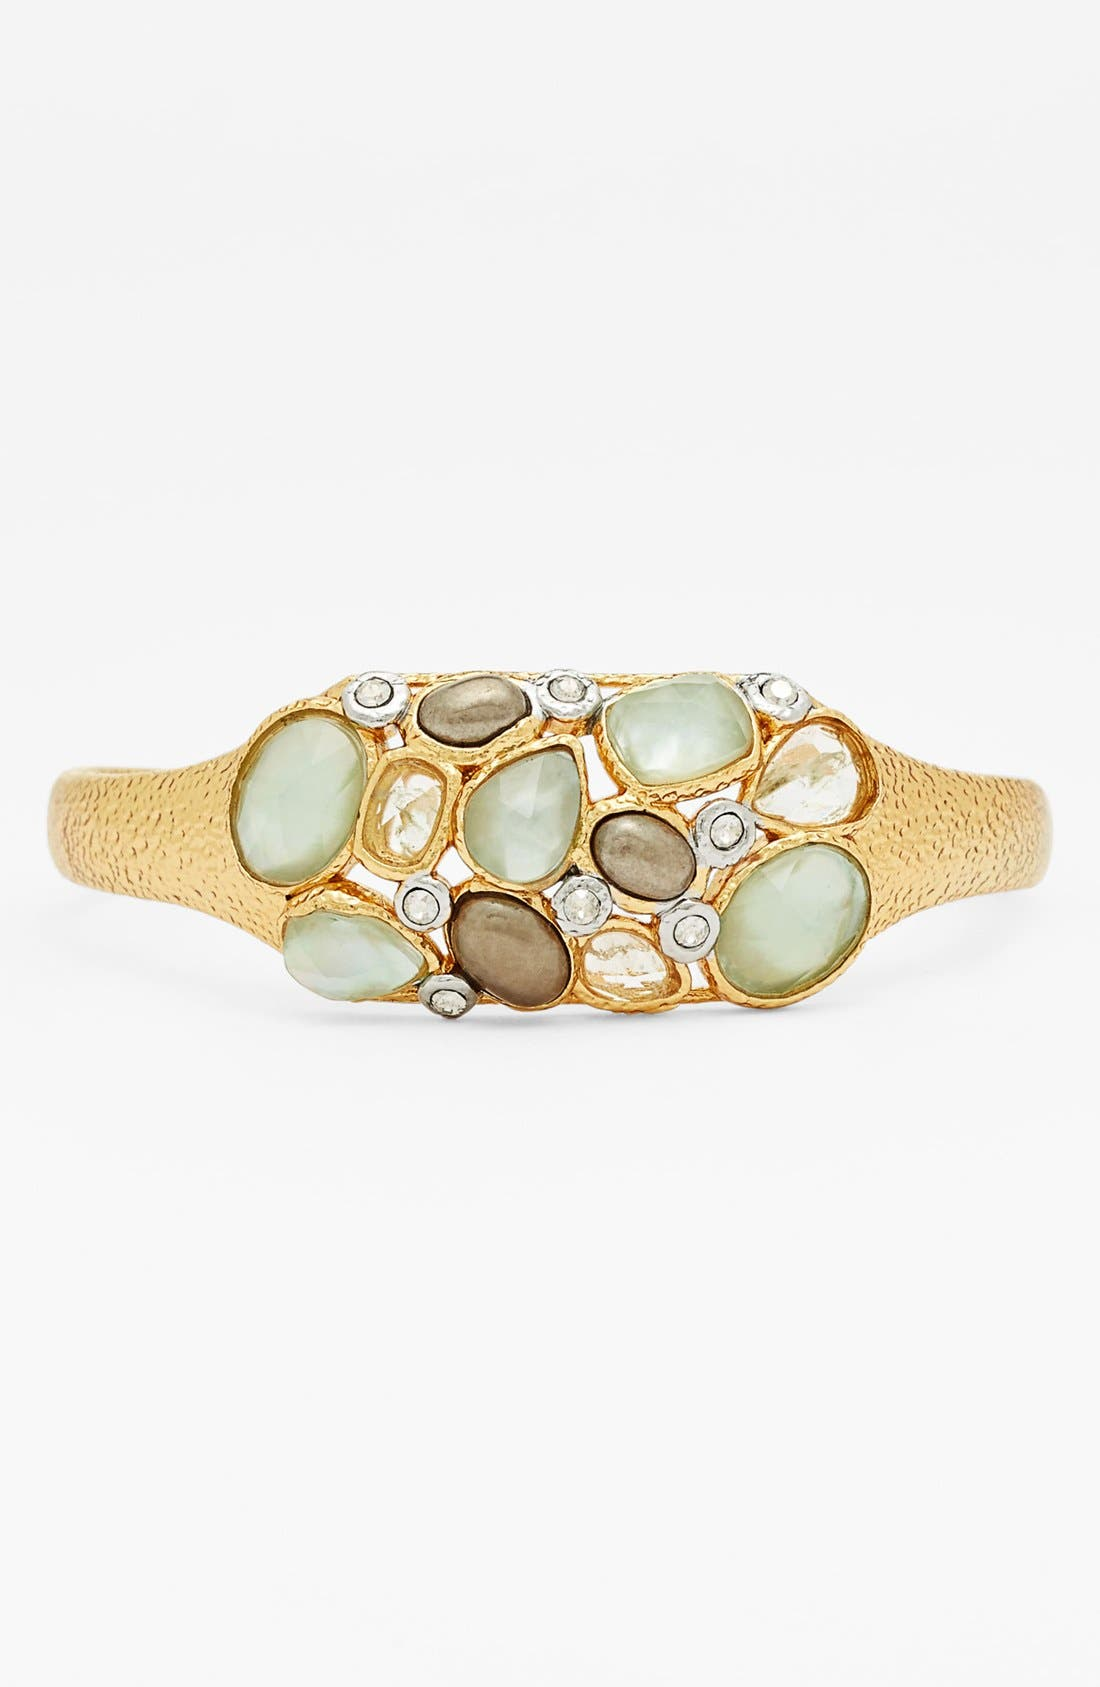 Alternate Image 1 Selected - Alexis Bittar 'Elements - Kiwi' Cluster Cuff